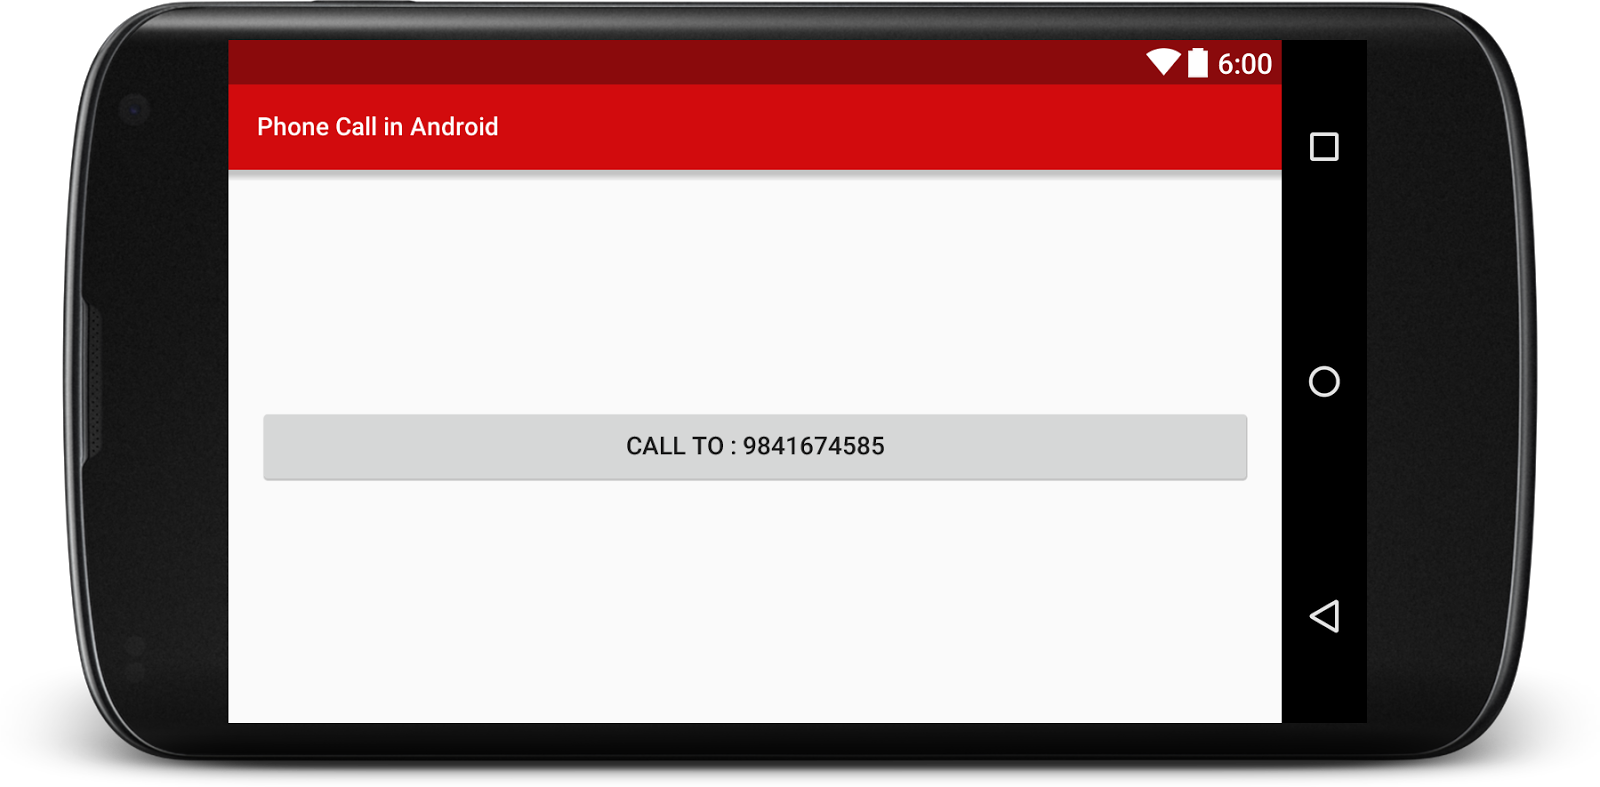 How to Make a Phone Call in Android